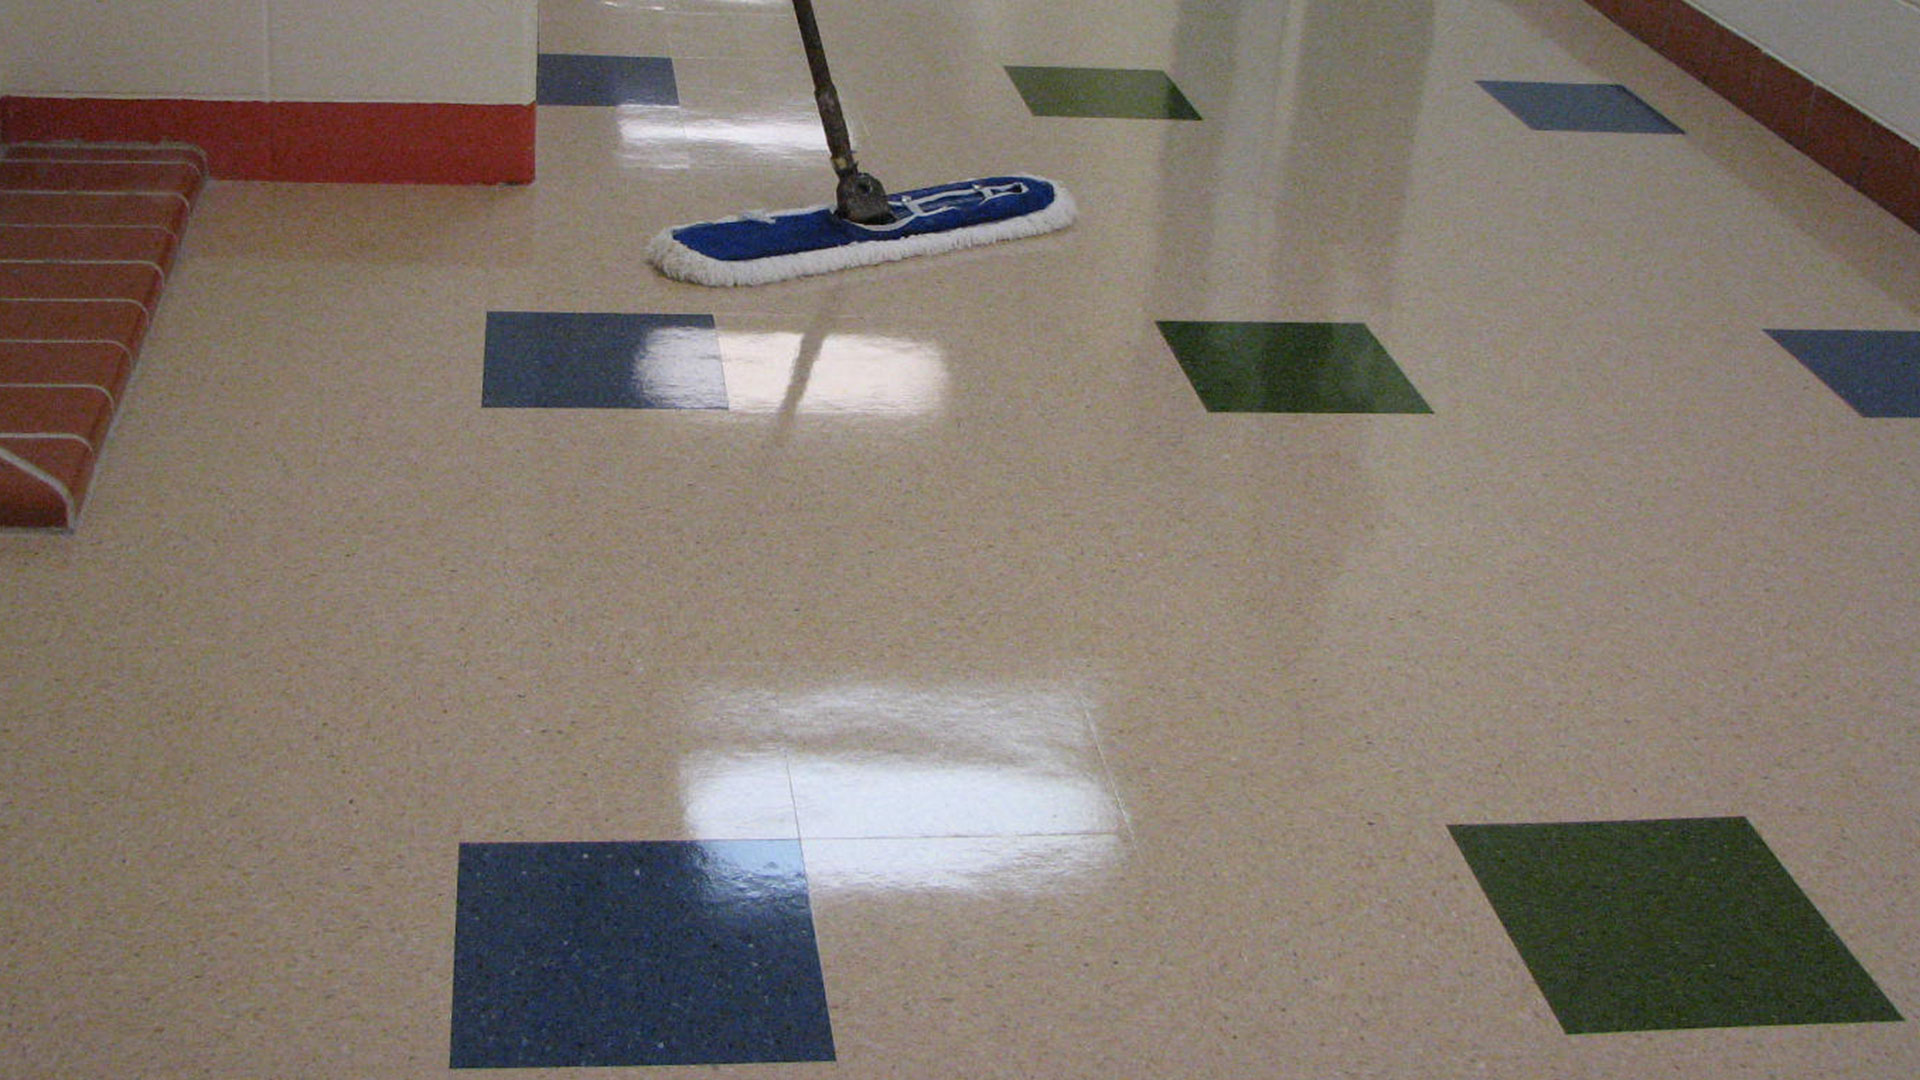 Hospitality Cleaning Colts Neck Township